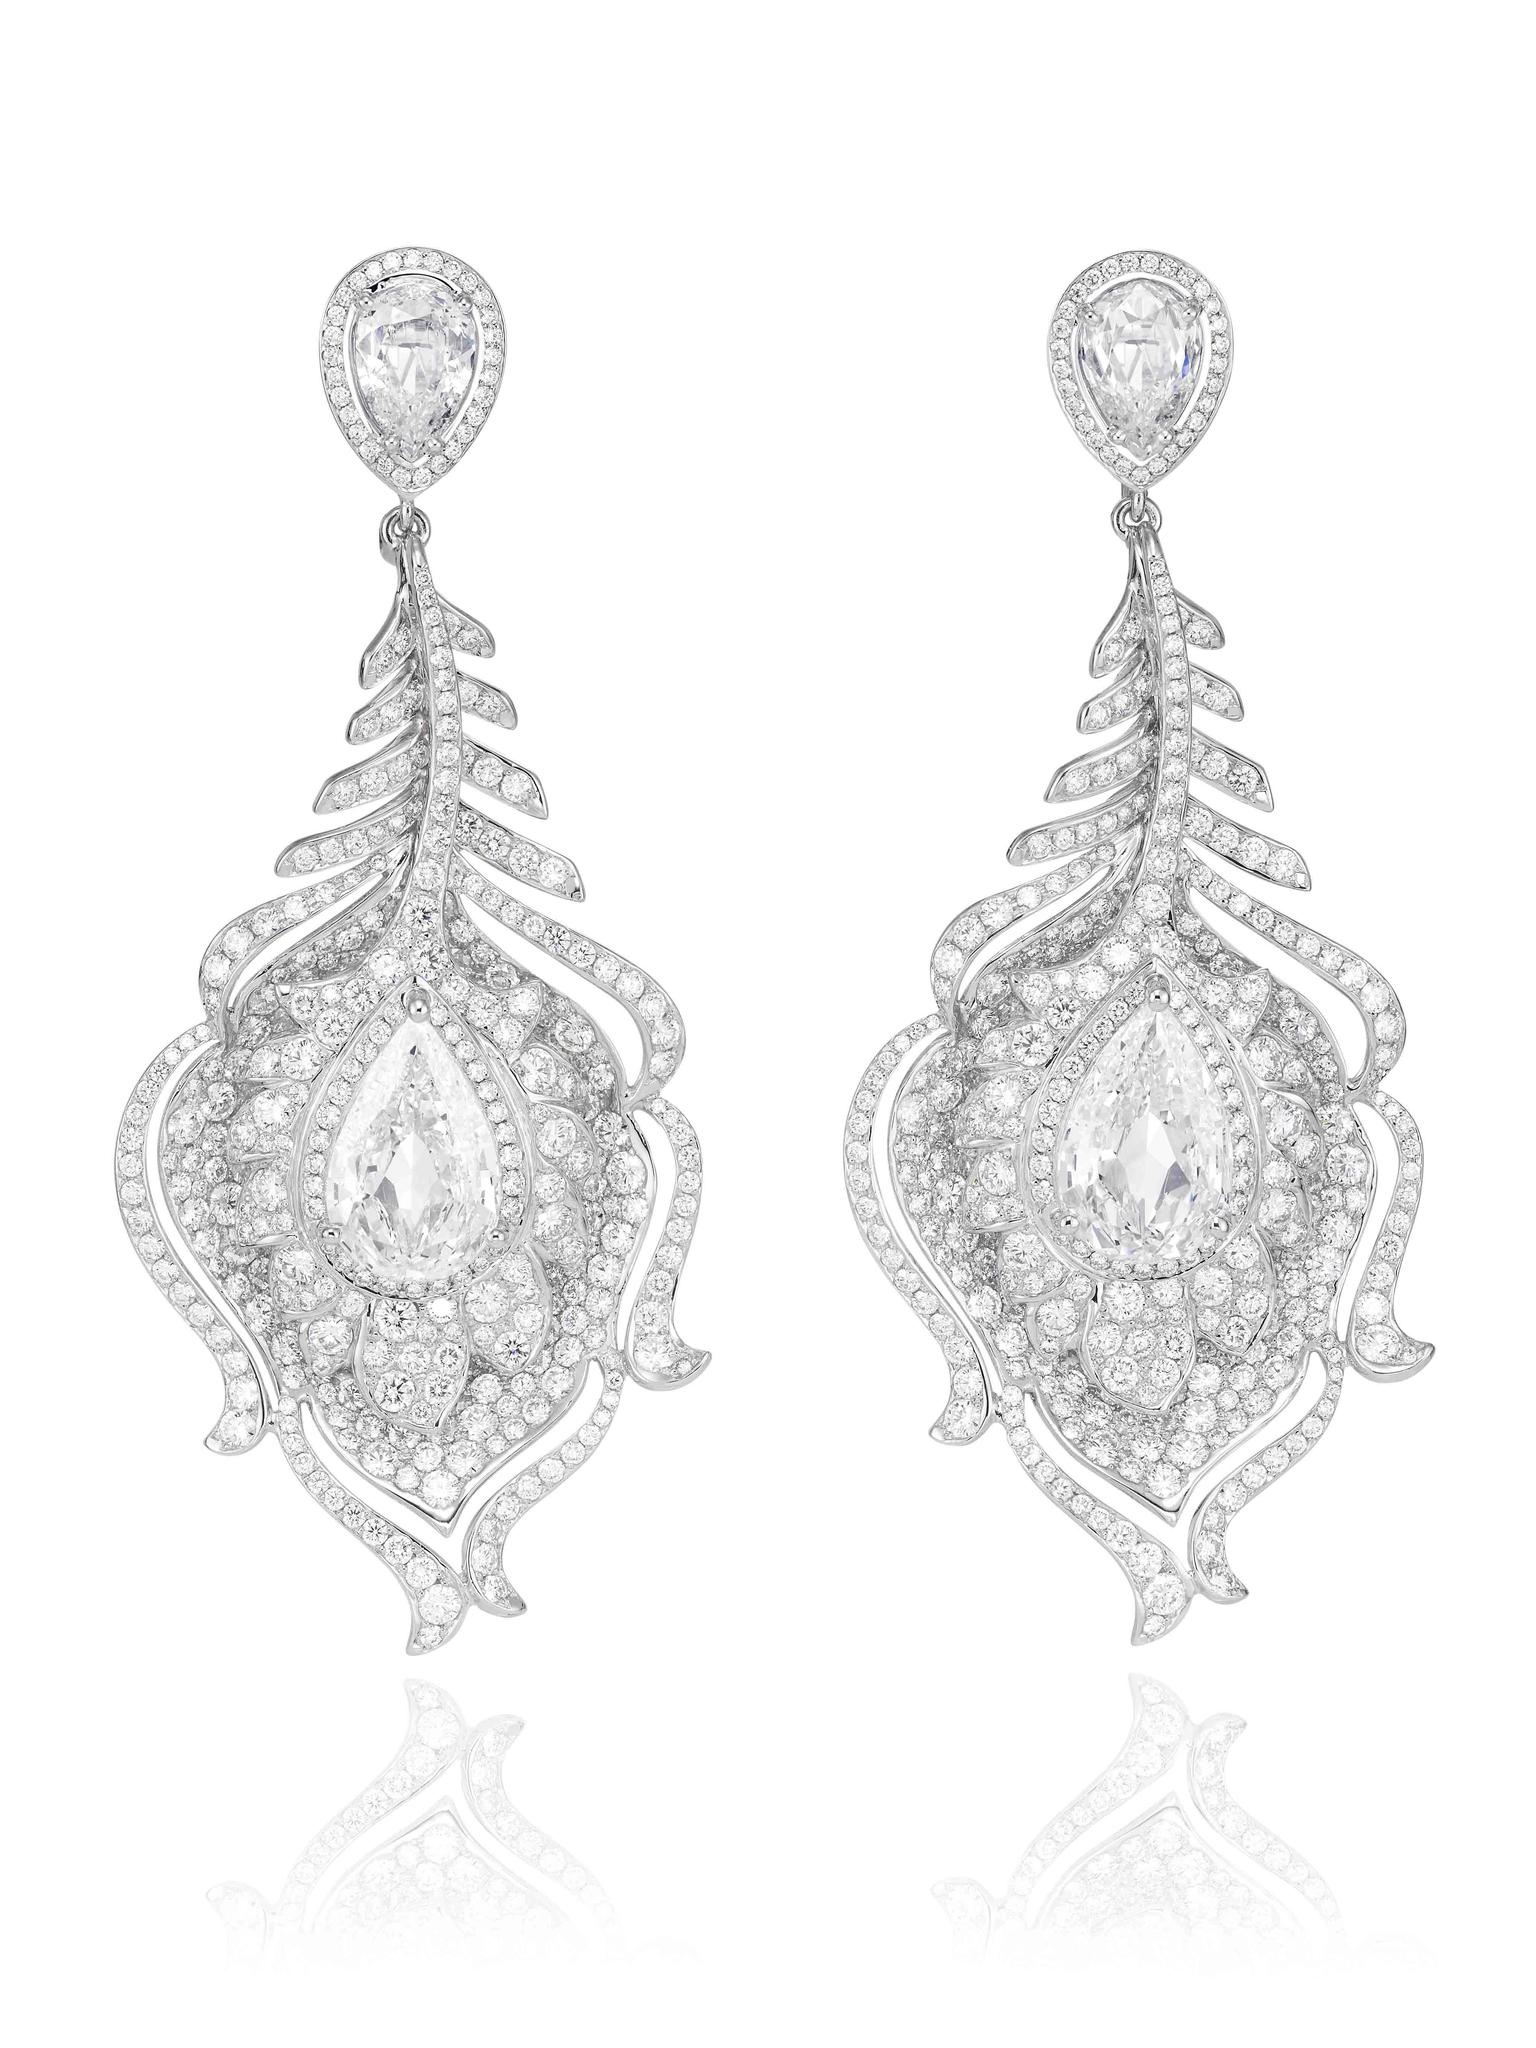 Chopard Red Carpet Collection 2014 Riviera diamond earrings. The Riviera set of jewels - a necklace and pair of earrings - took more than 1,000 hours to make